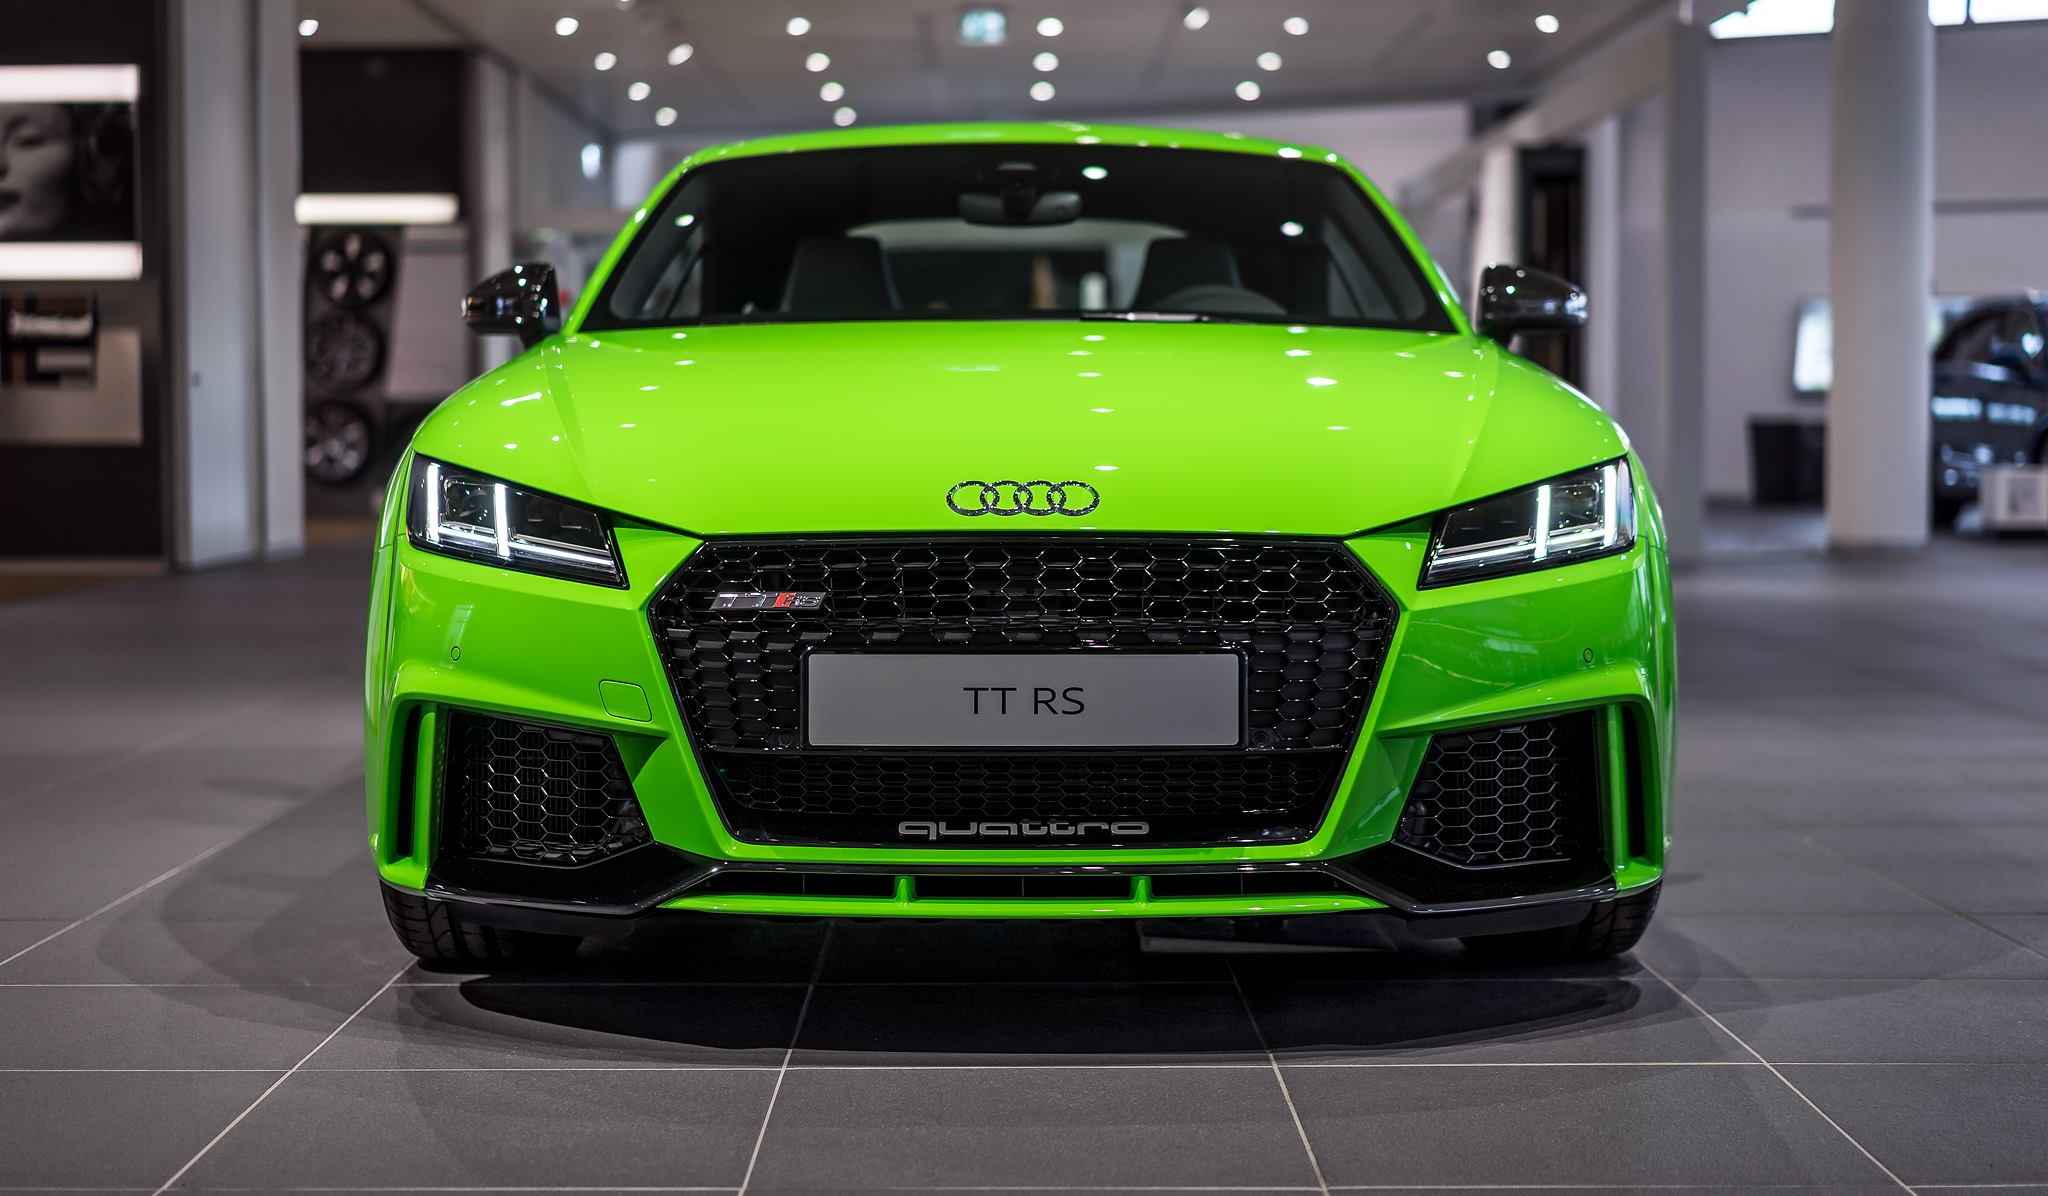 2017-audi-tt-rs-in-lime-green-looks-like-a-tiny-exotic-car-107770_1.jpg